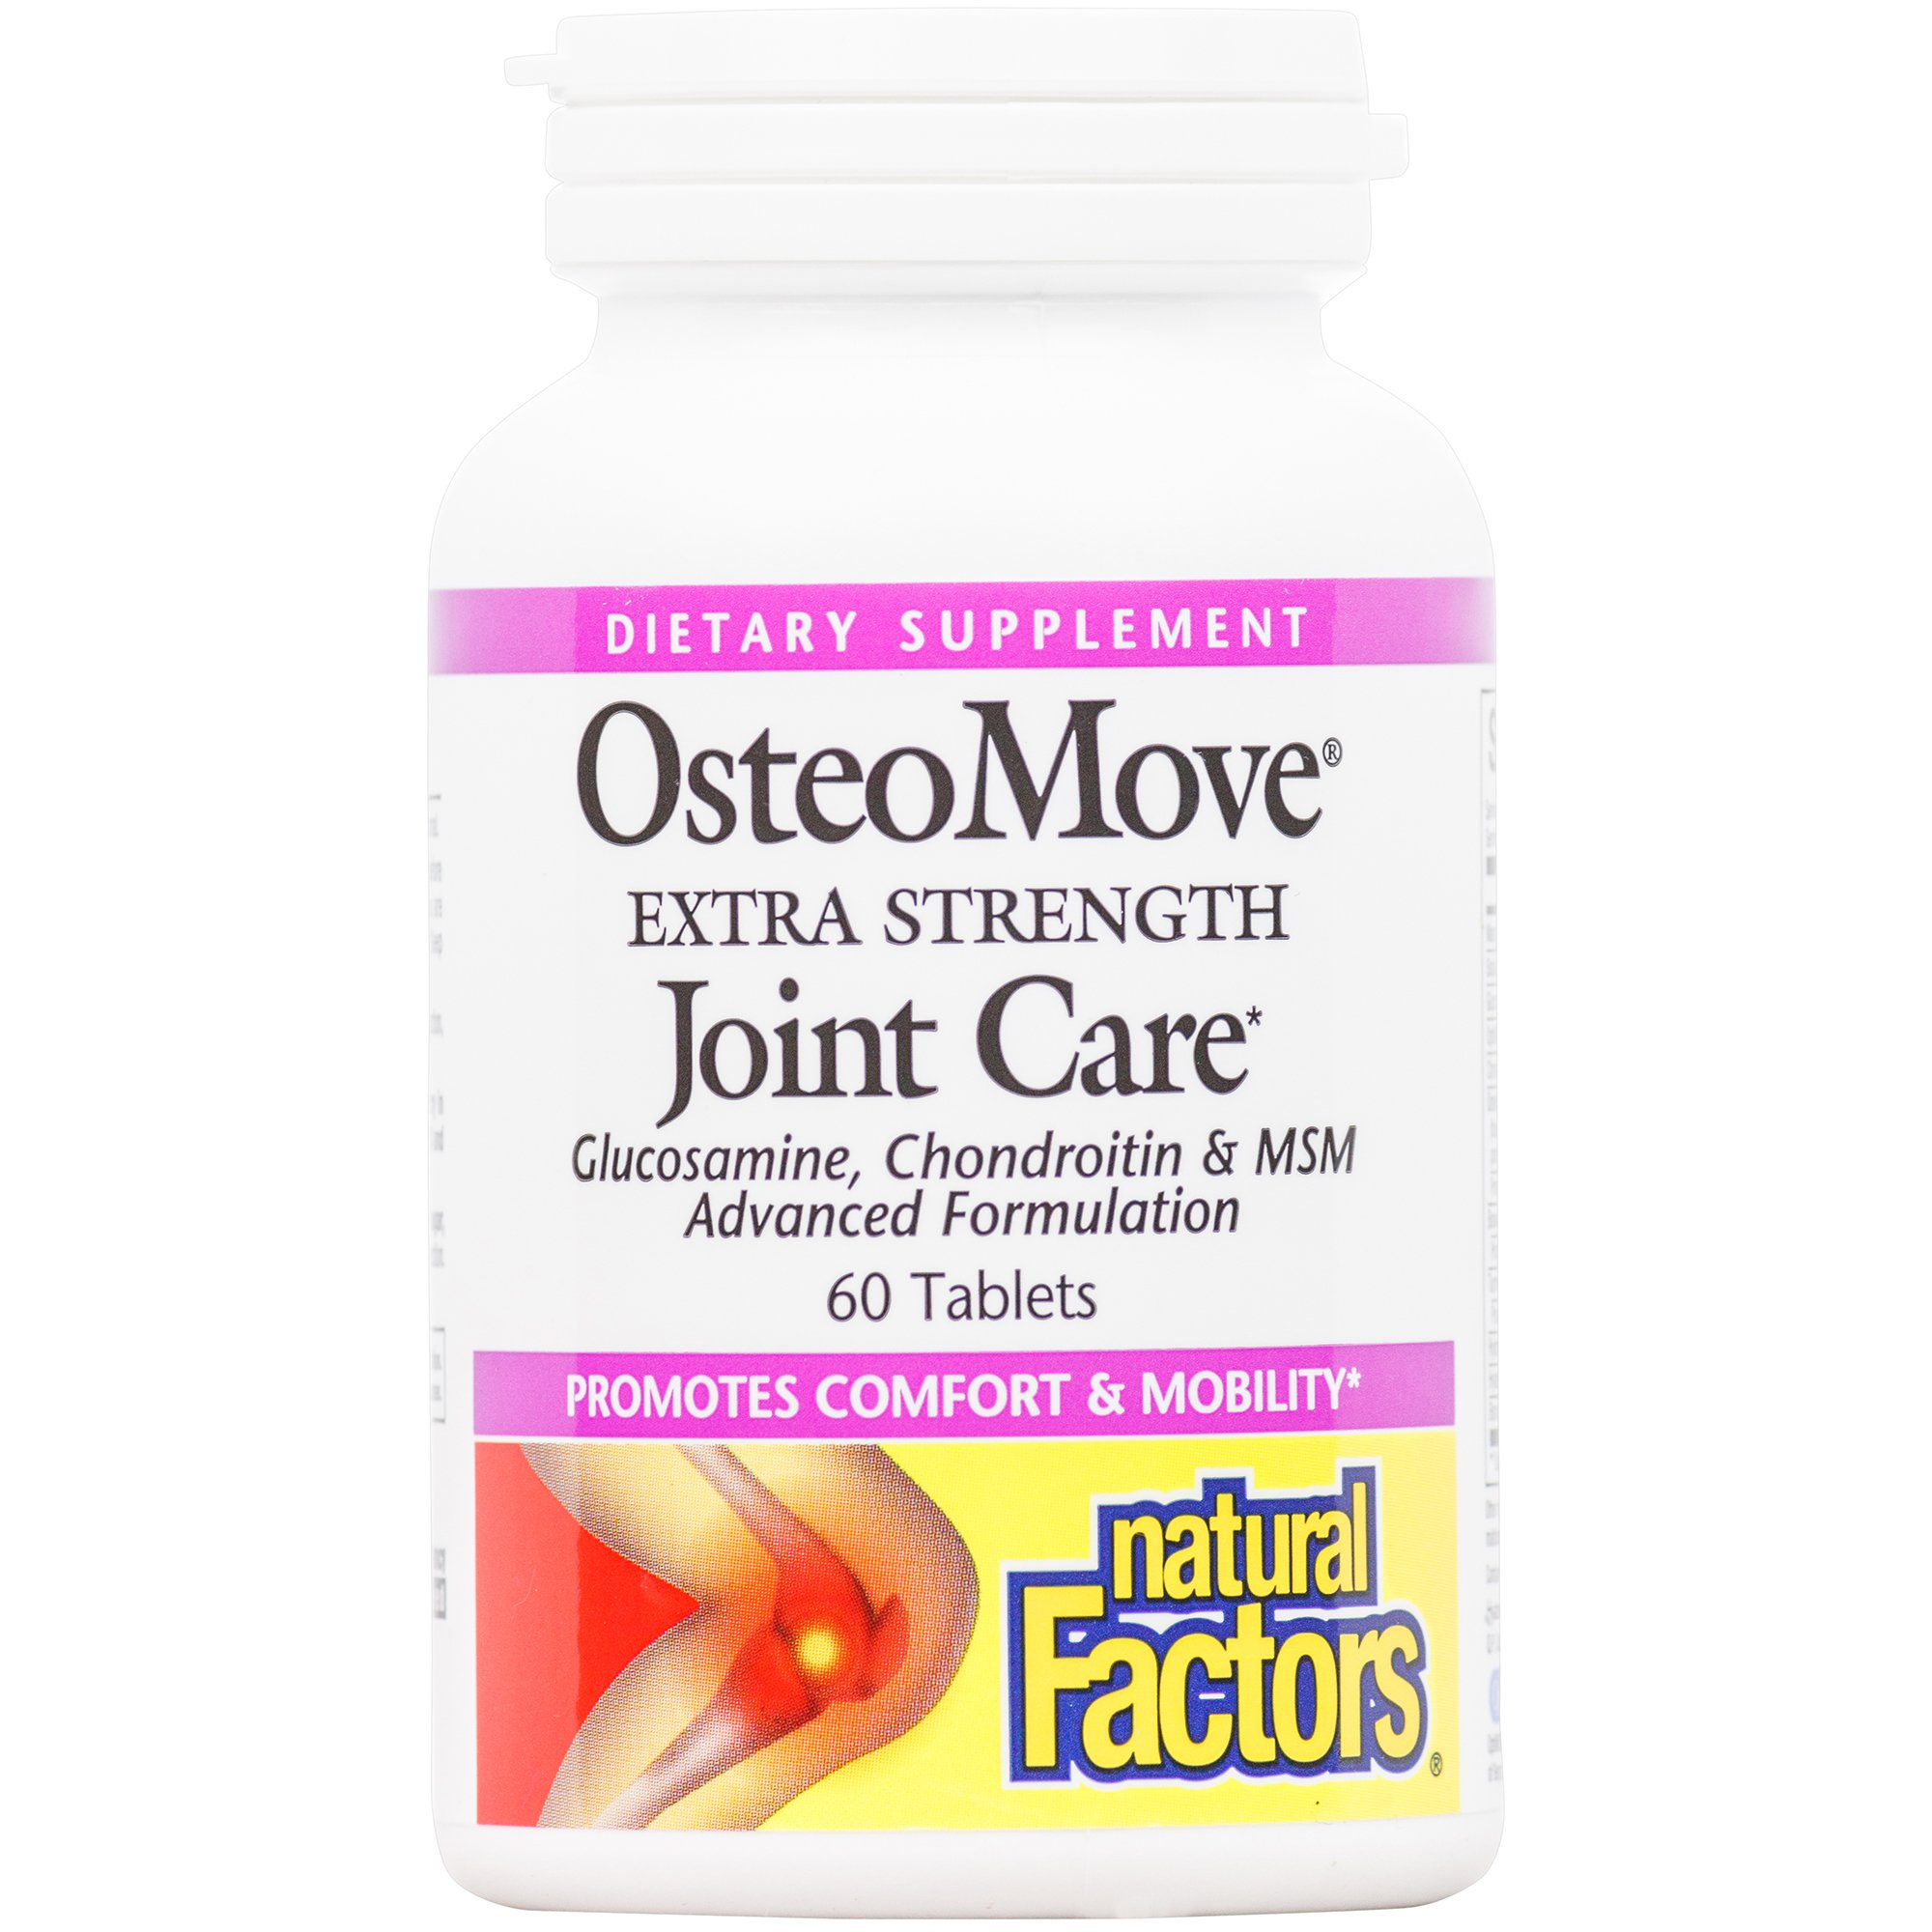 Natural Factors - OsteoMove Extra Strength Joint Care, Promotes Comfort and Mobility with Glucosamine, Chondroitin, and MSM, Gluten Free, 60 Tablets